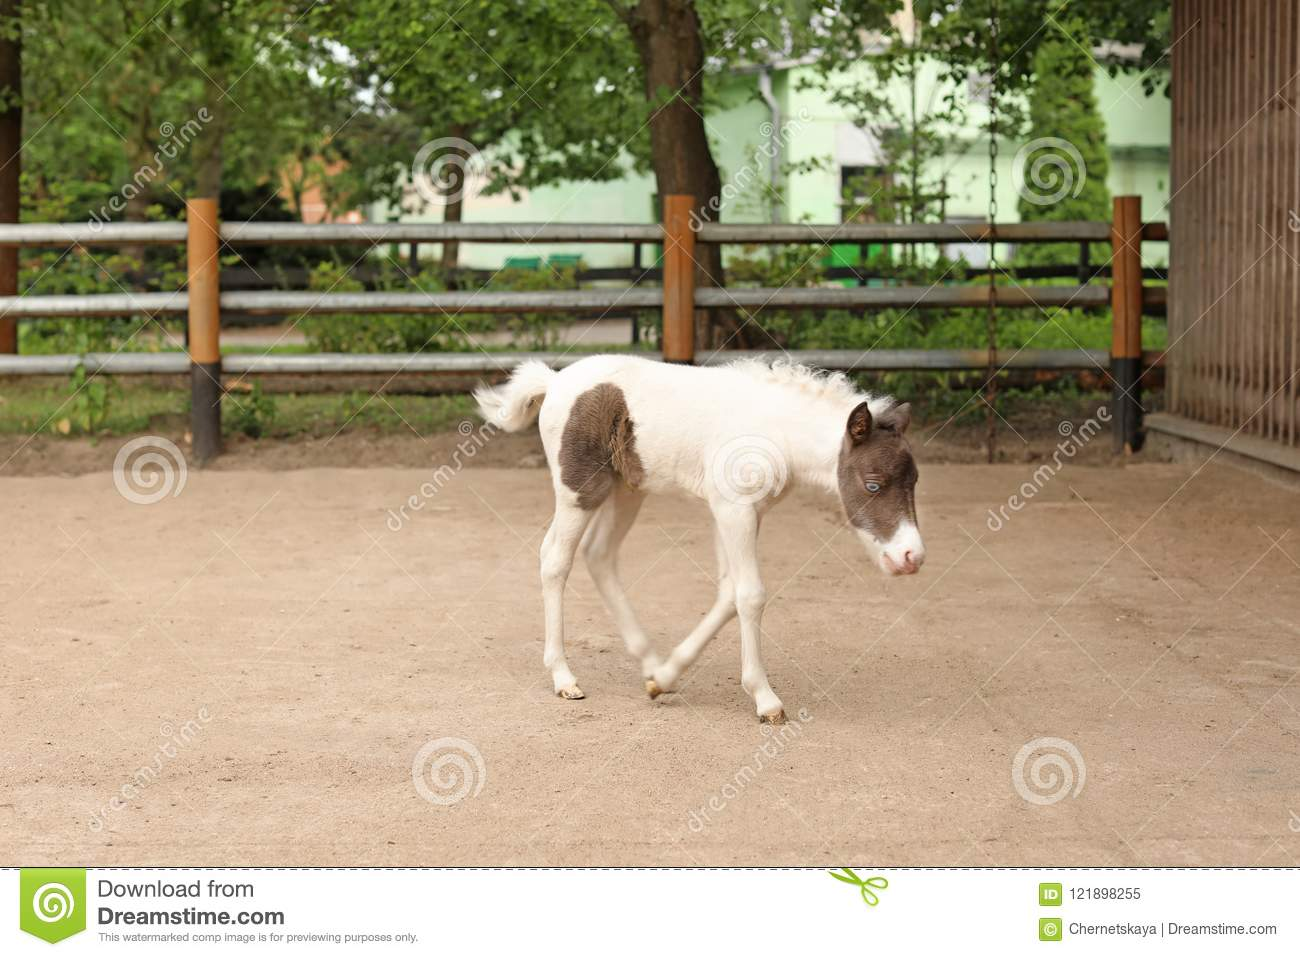 Beautiful Baby Horse In Zoological Garden Stock Image Image Of Garden Background 121898255